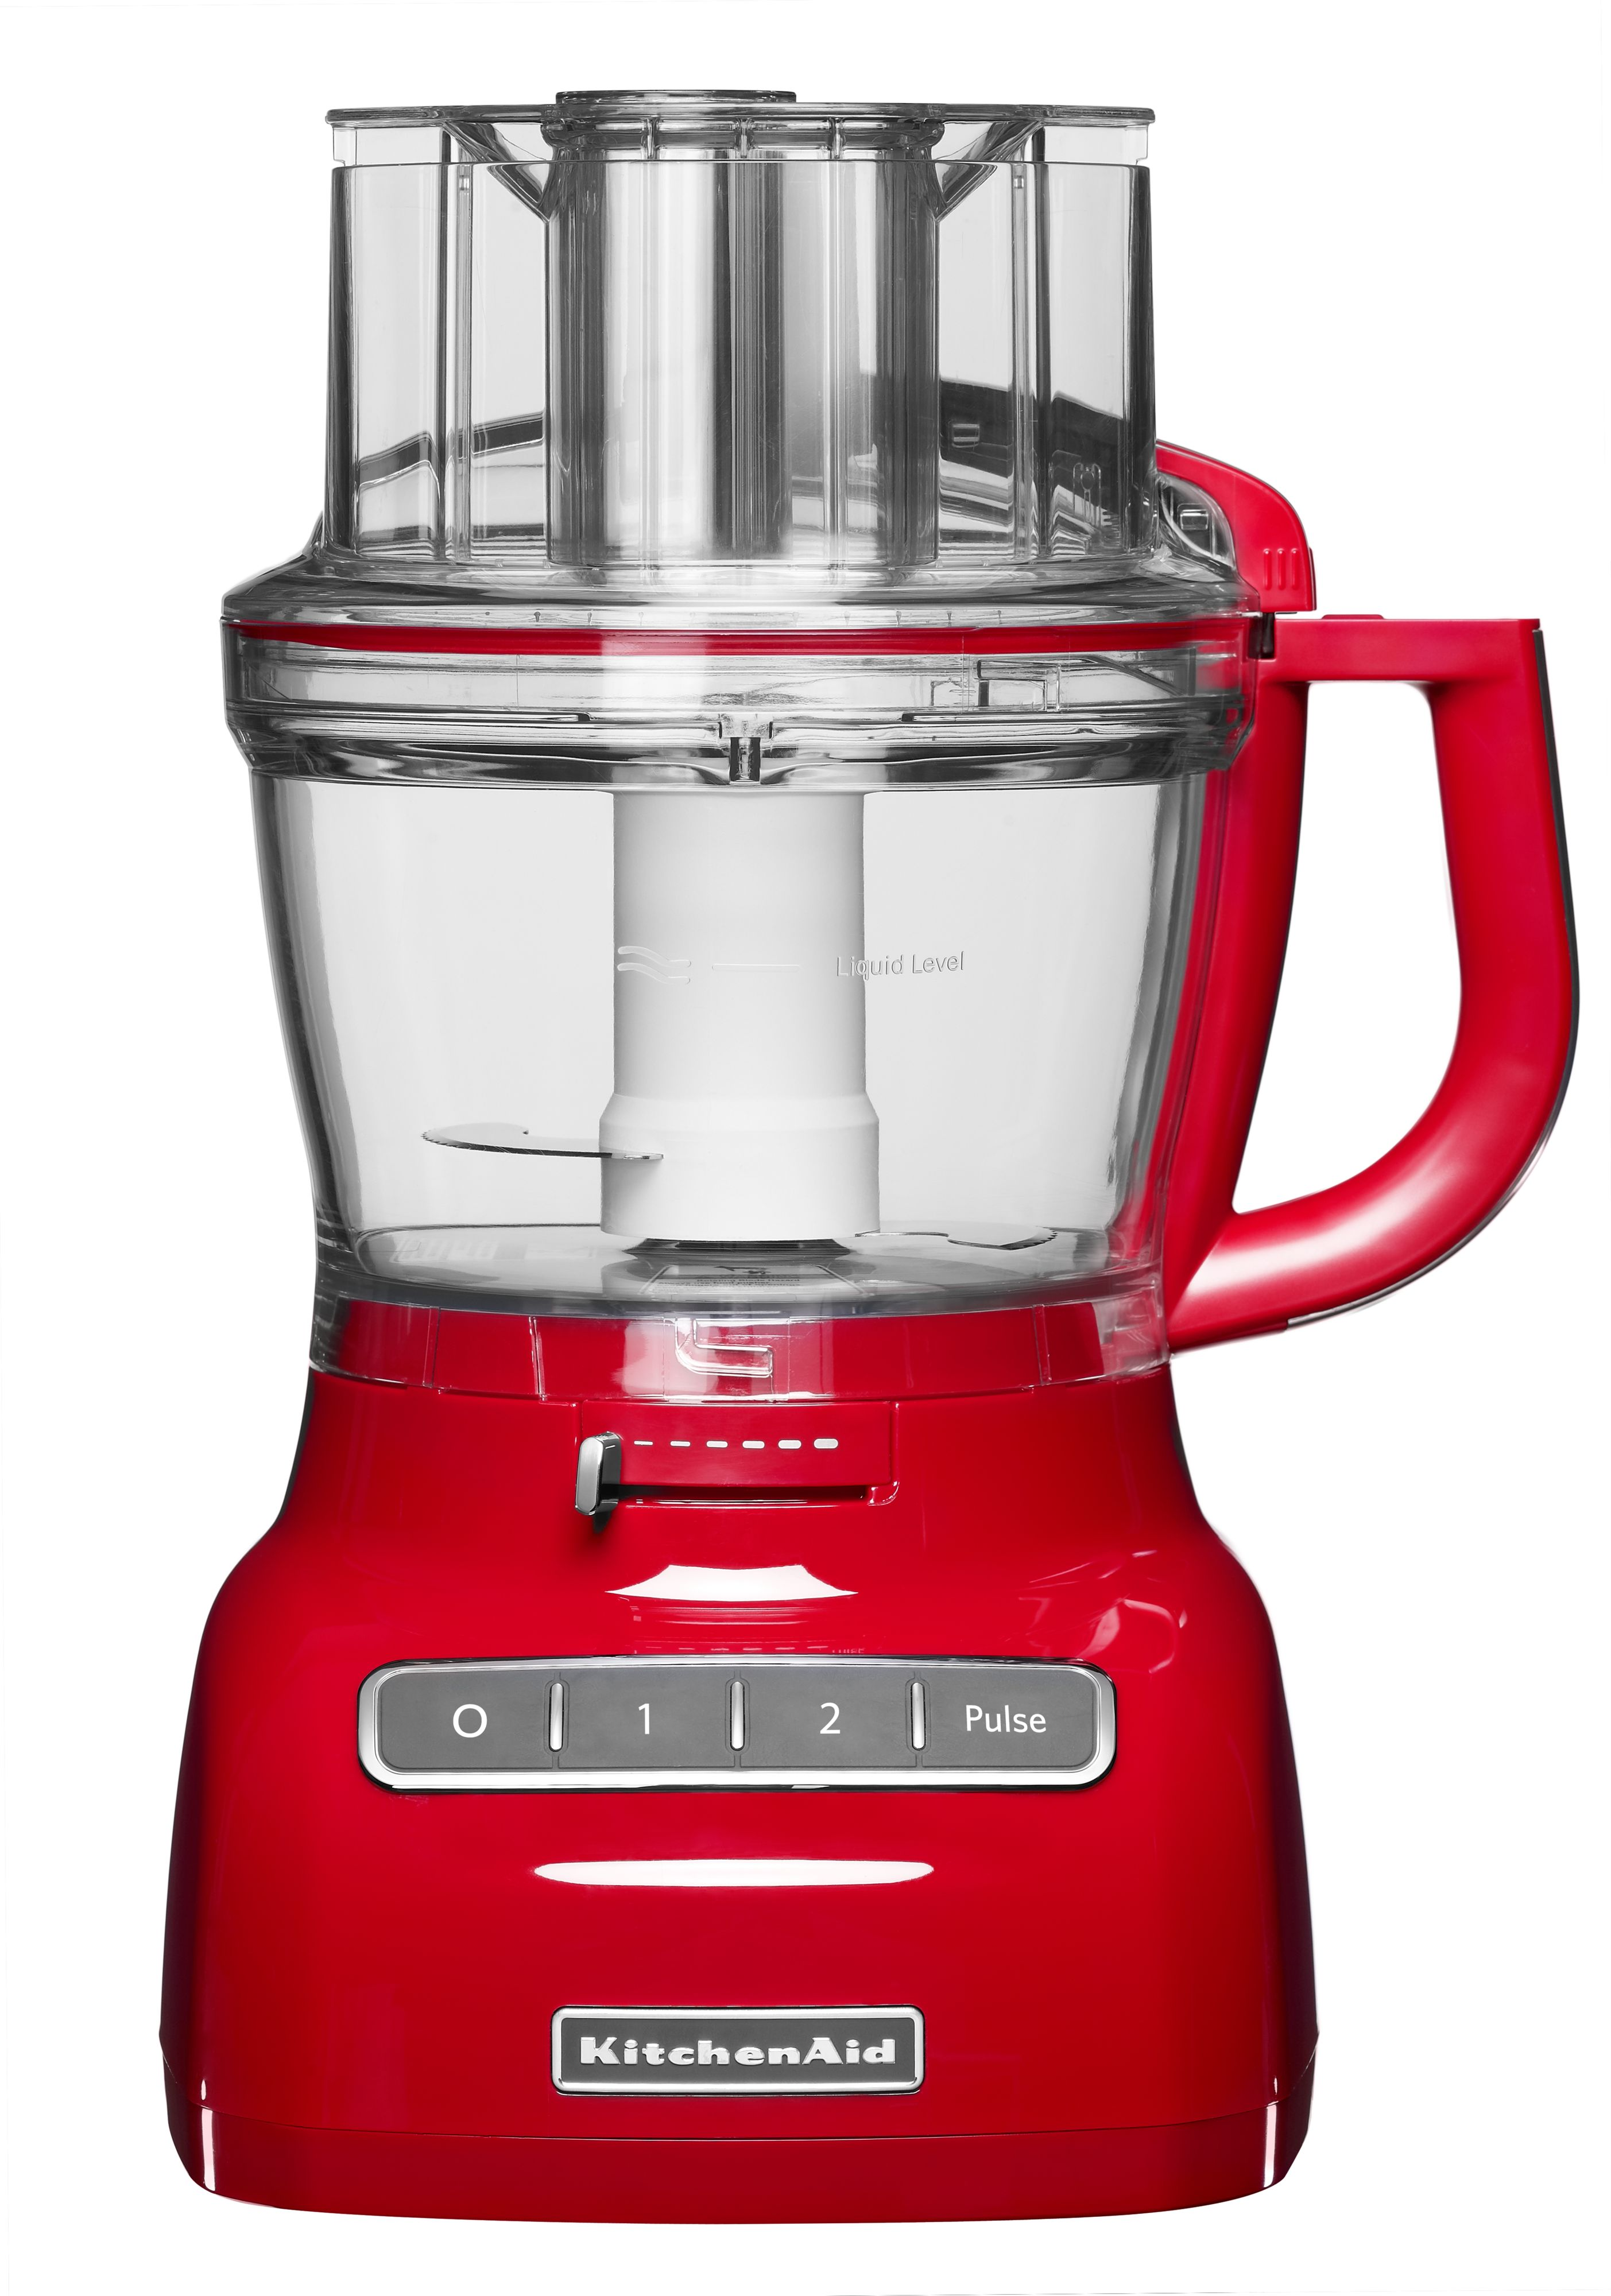 3.1L KitchenAid Empire red food processor